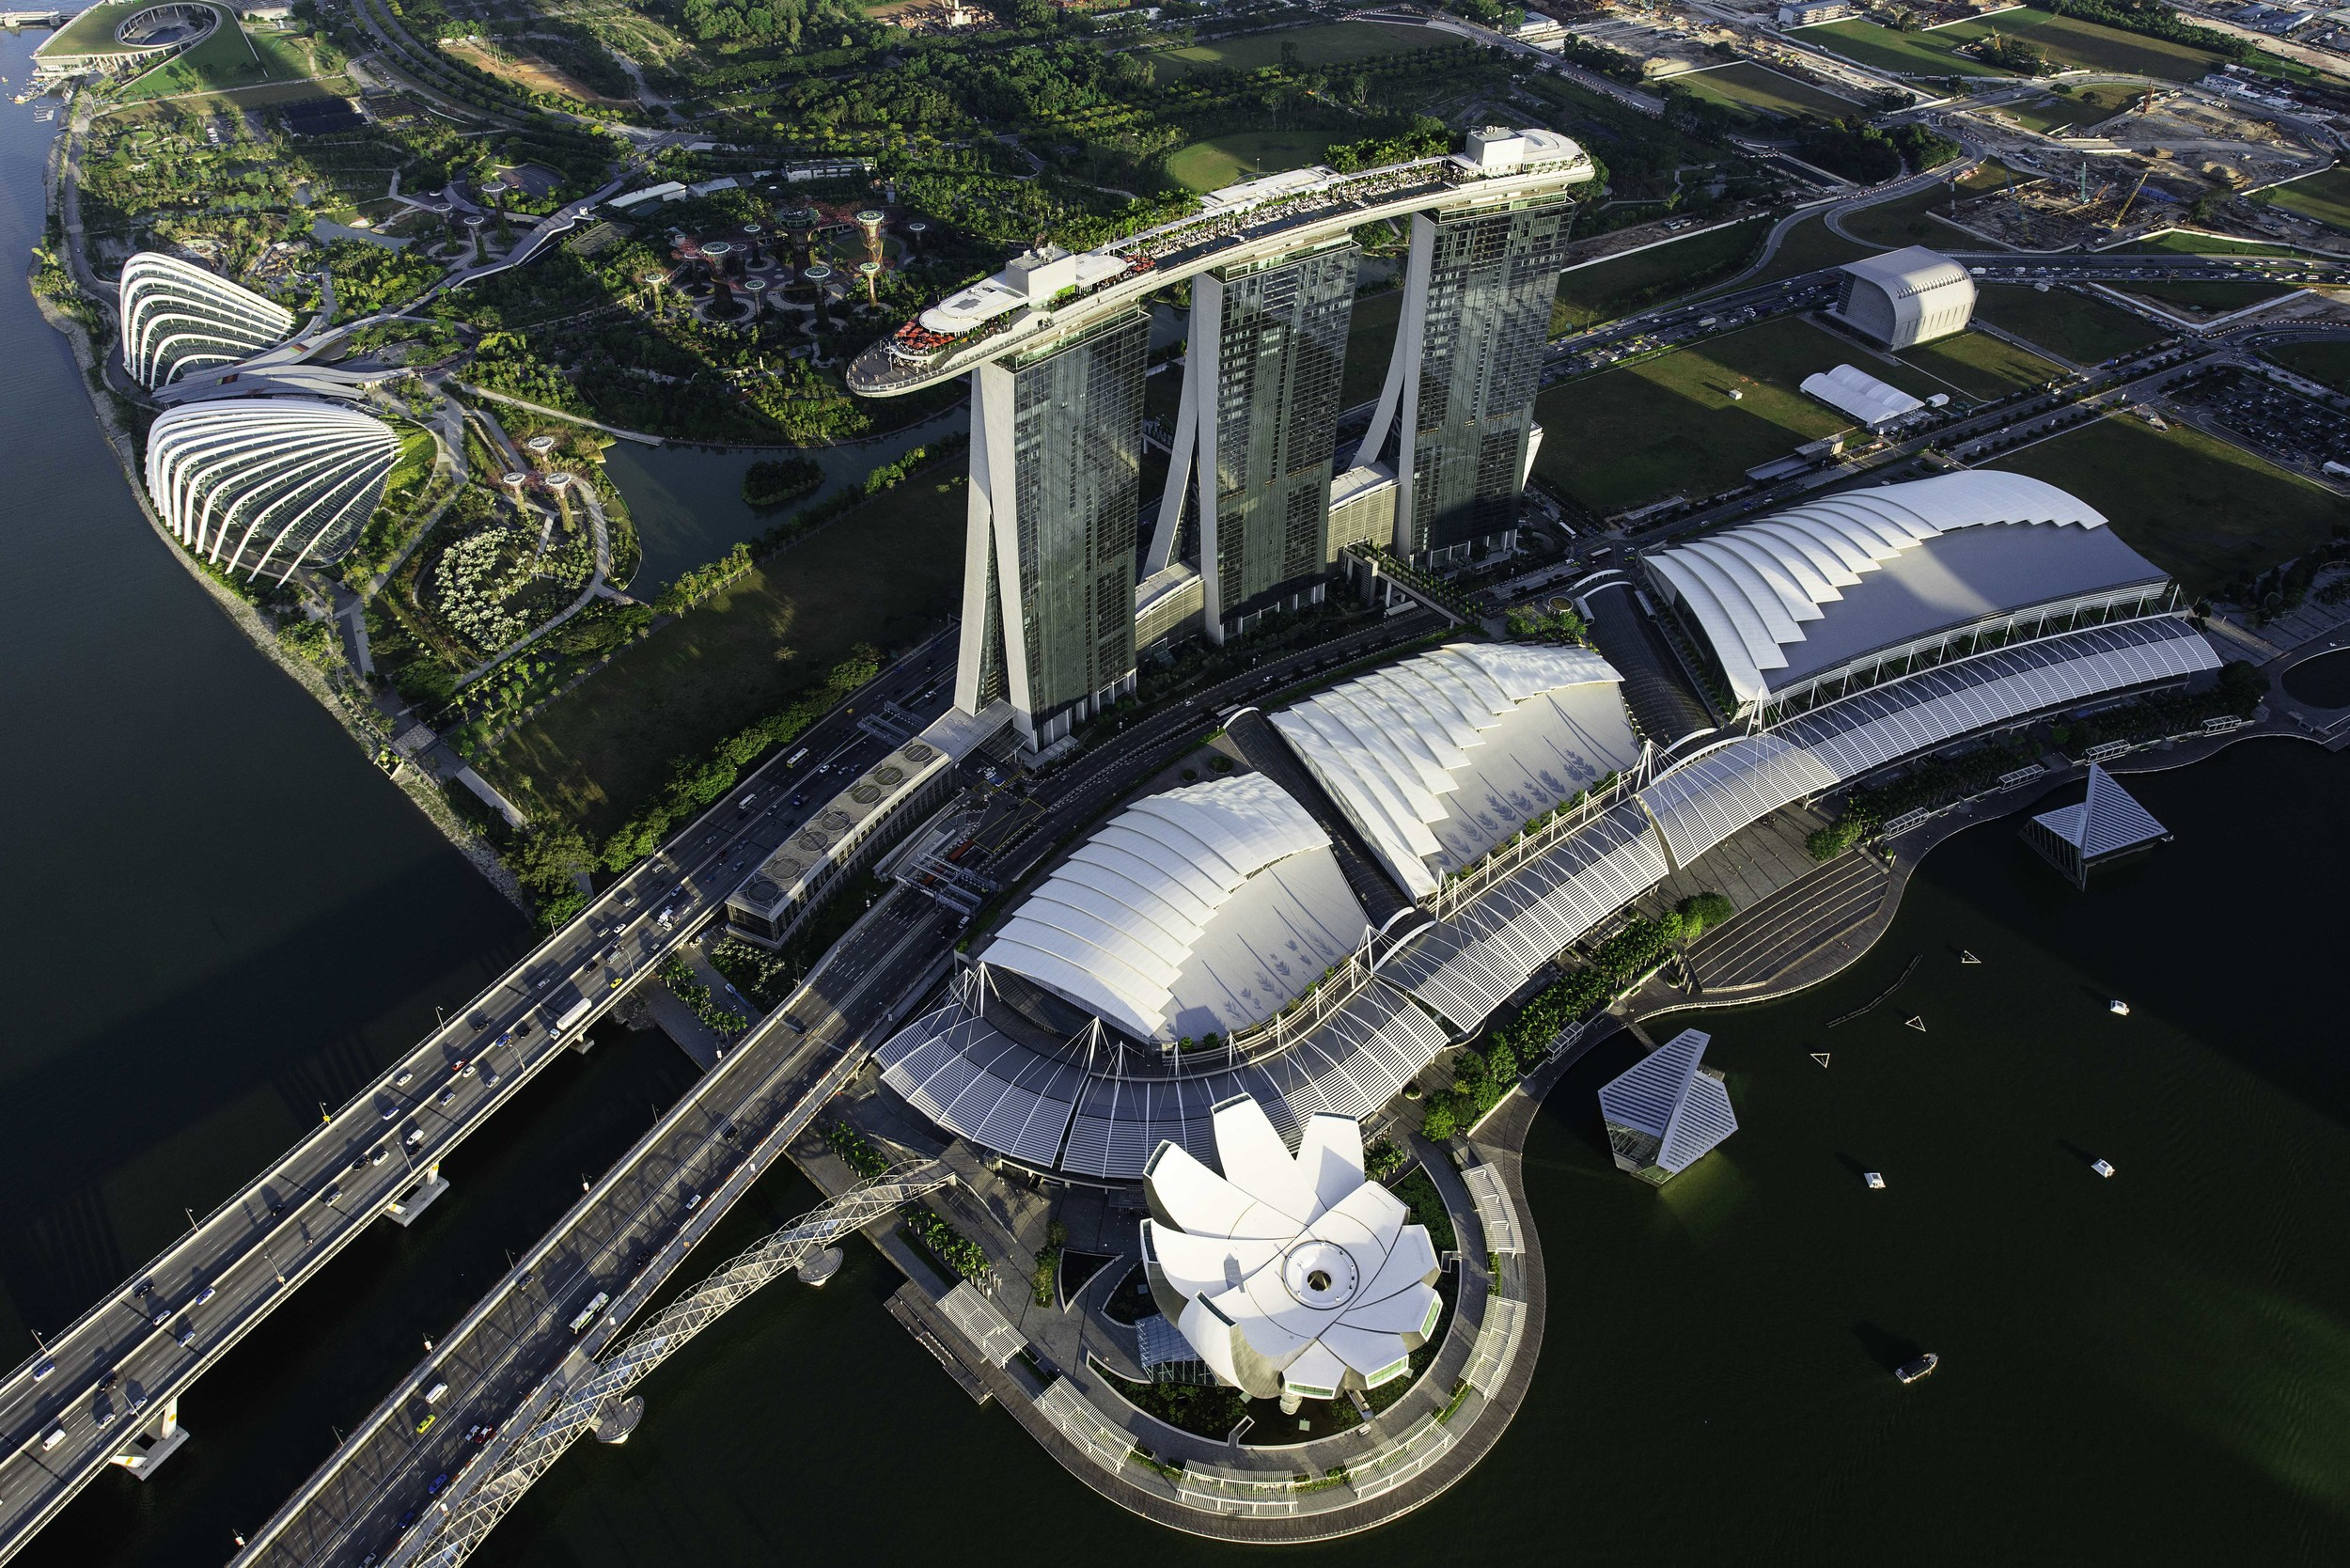 View from the Top | Photo Credit: Marina Bay Sands